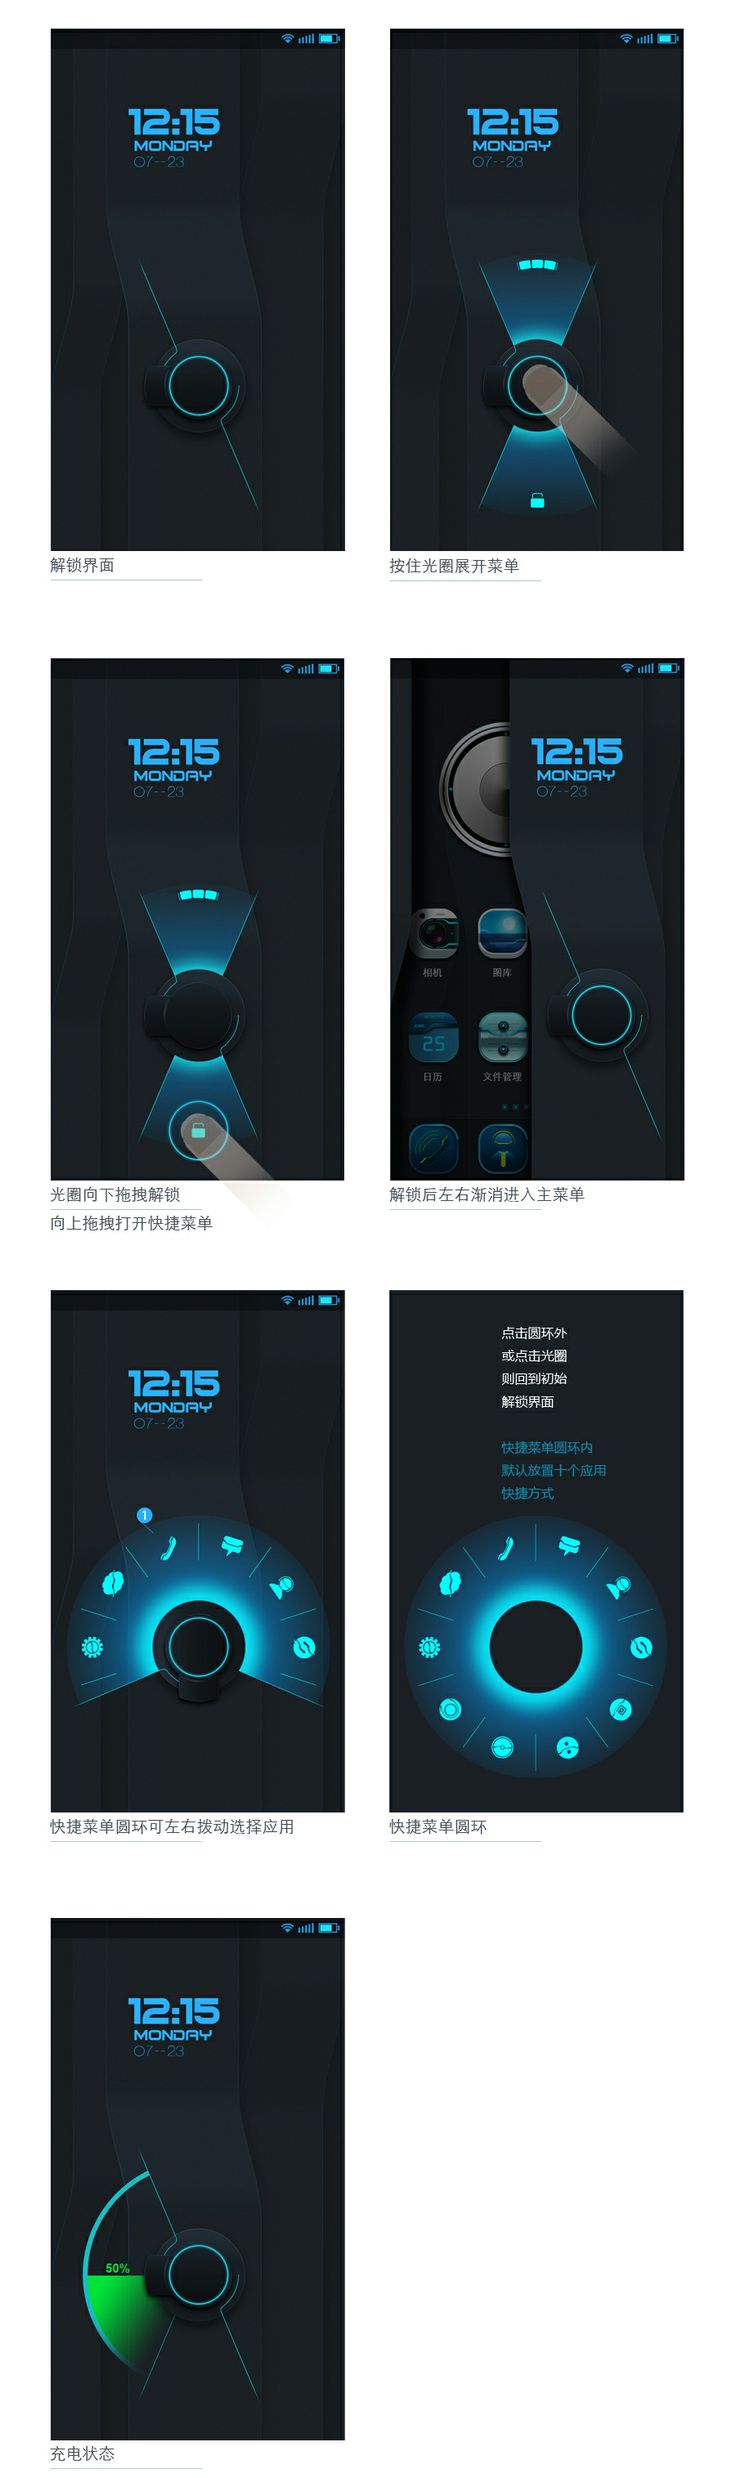 Now THIS would be an amazing UI... Hear that Samsung... Forget Touch Wiz and adopt this